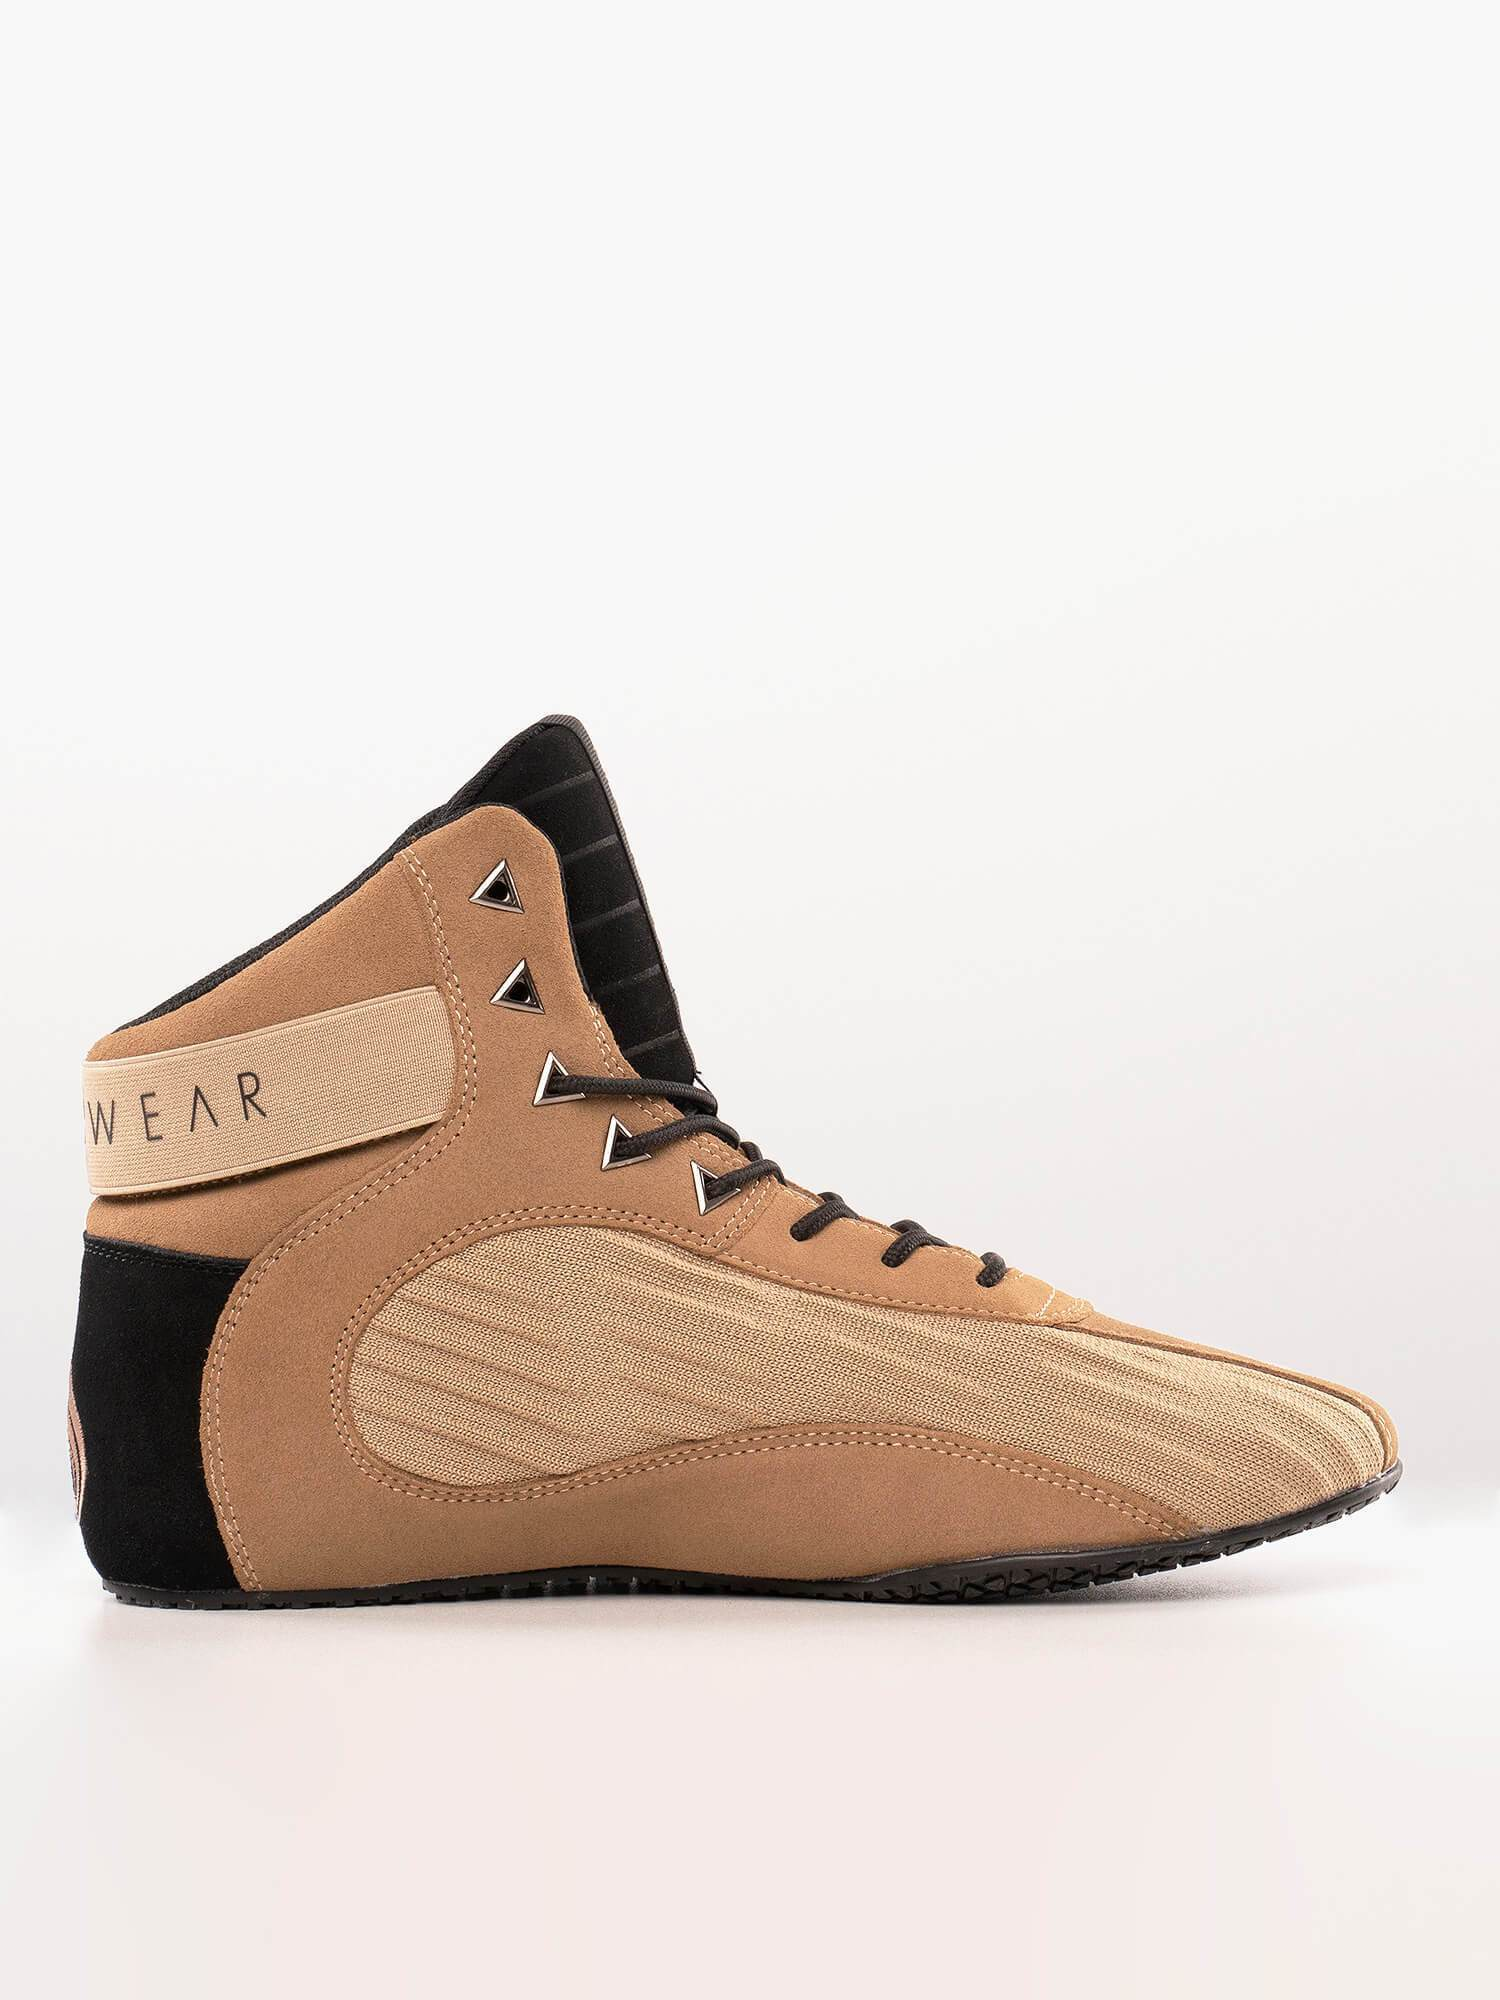 Ryder Wear D-Mak II Lifting Shoe - Tan